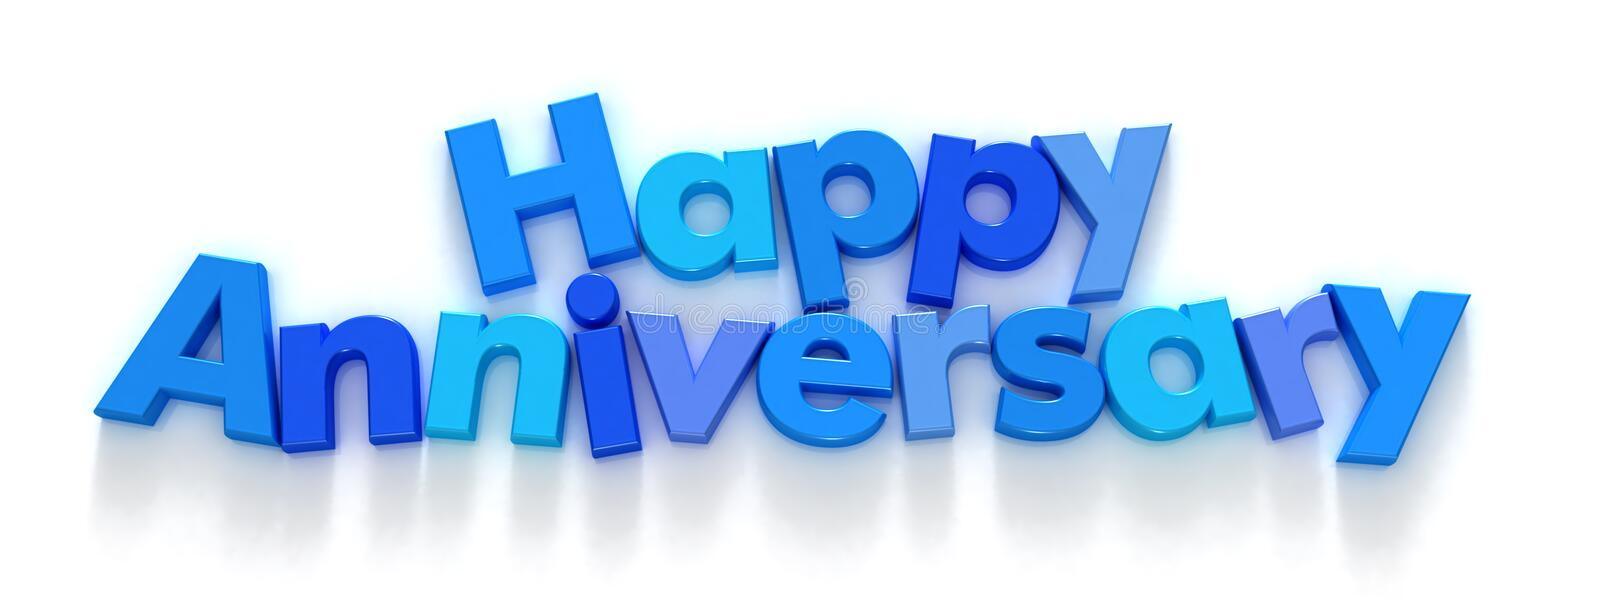 Happy Anniversary In Blue Letter Magnets Stock Photo